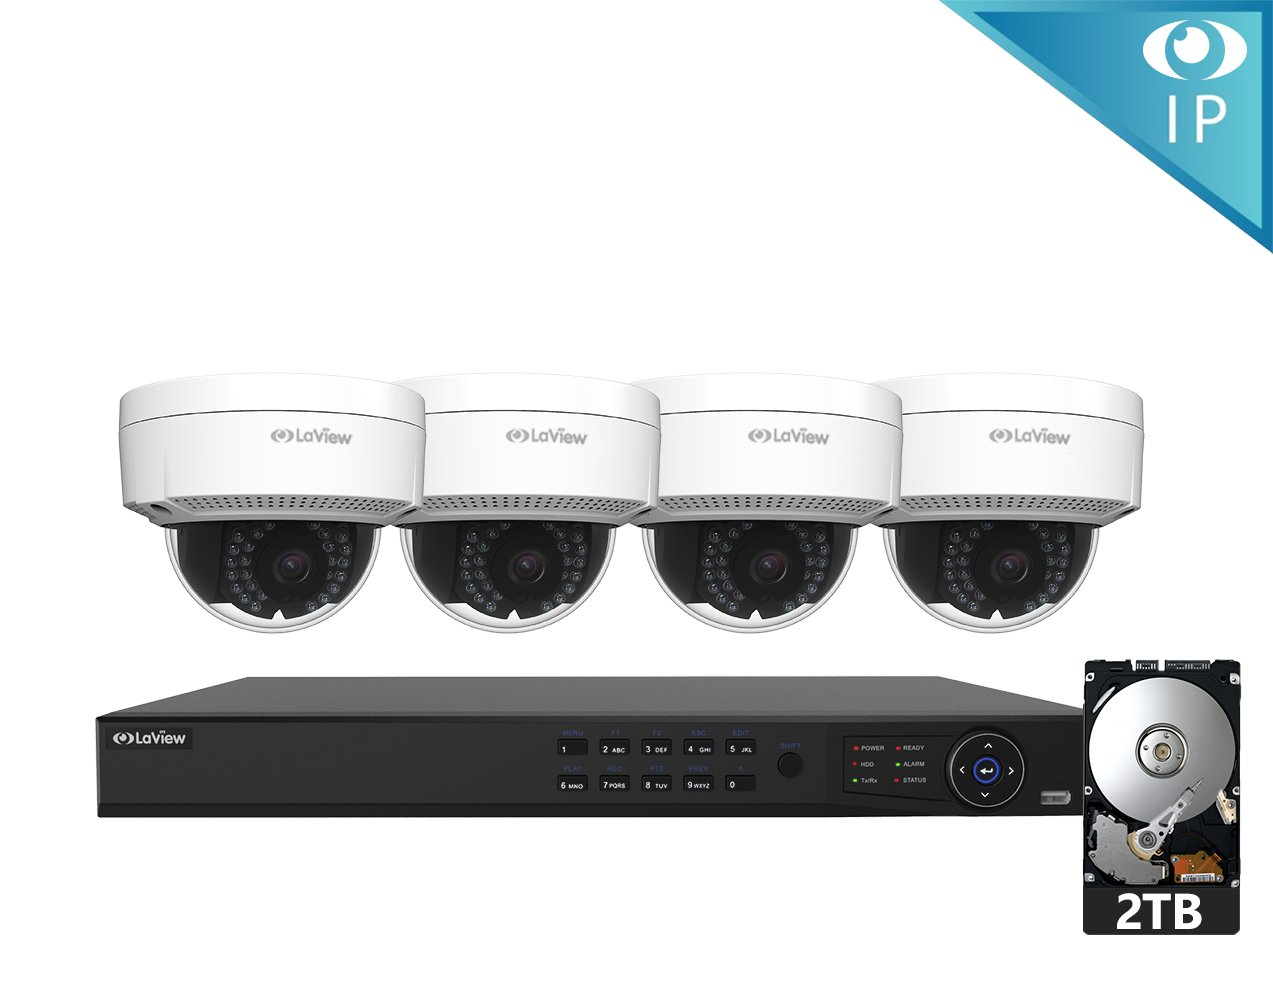 LaView 1080P IP 4 Camera Security System, 8 Channel IP PoE HDMI NVR (Resolution 1080p - 6MP) w/2TB HDD and 4 IP High Resolution Dome 2MP White Surveillance Camera Kit